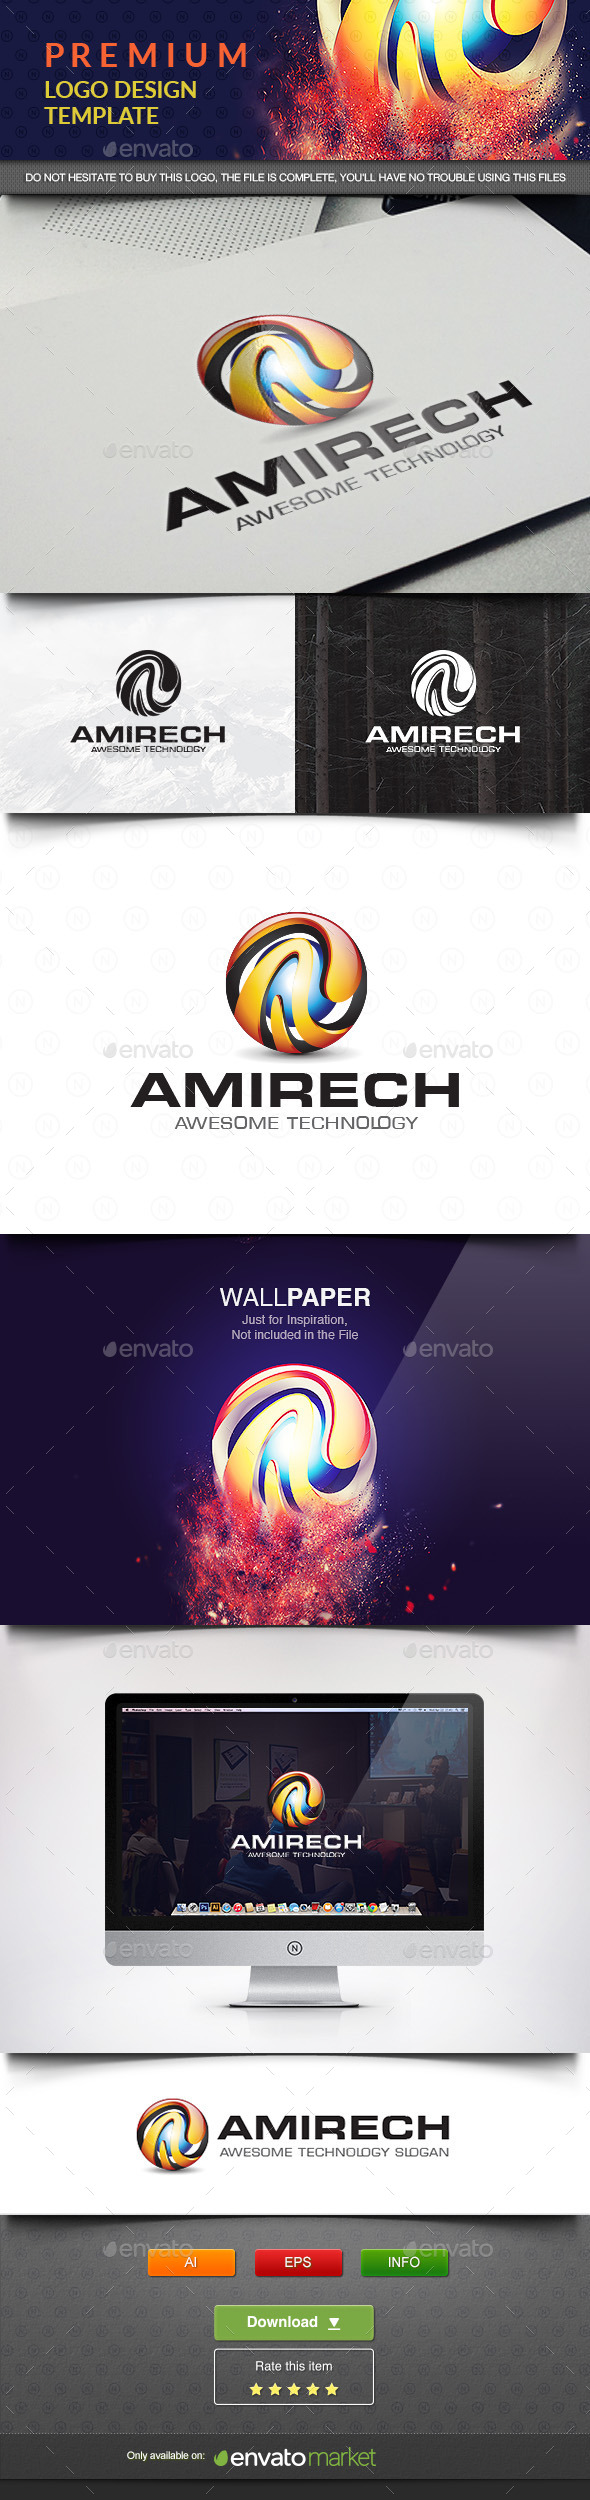 Amirech Logo Template - 3d Abstract